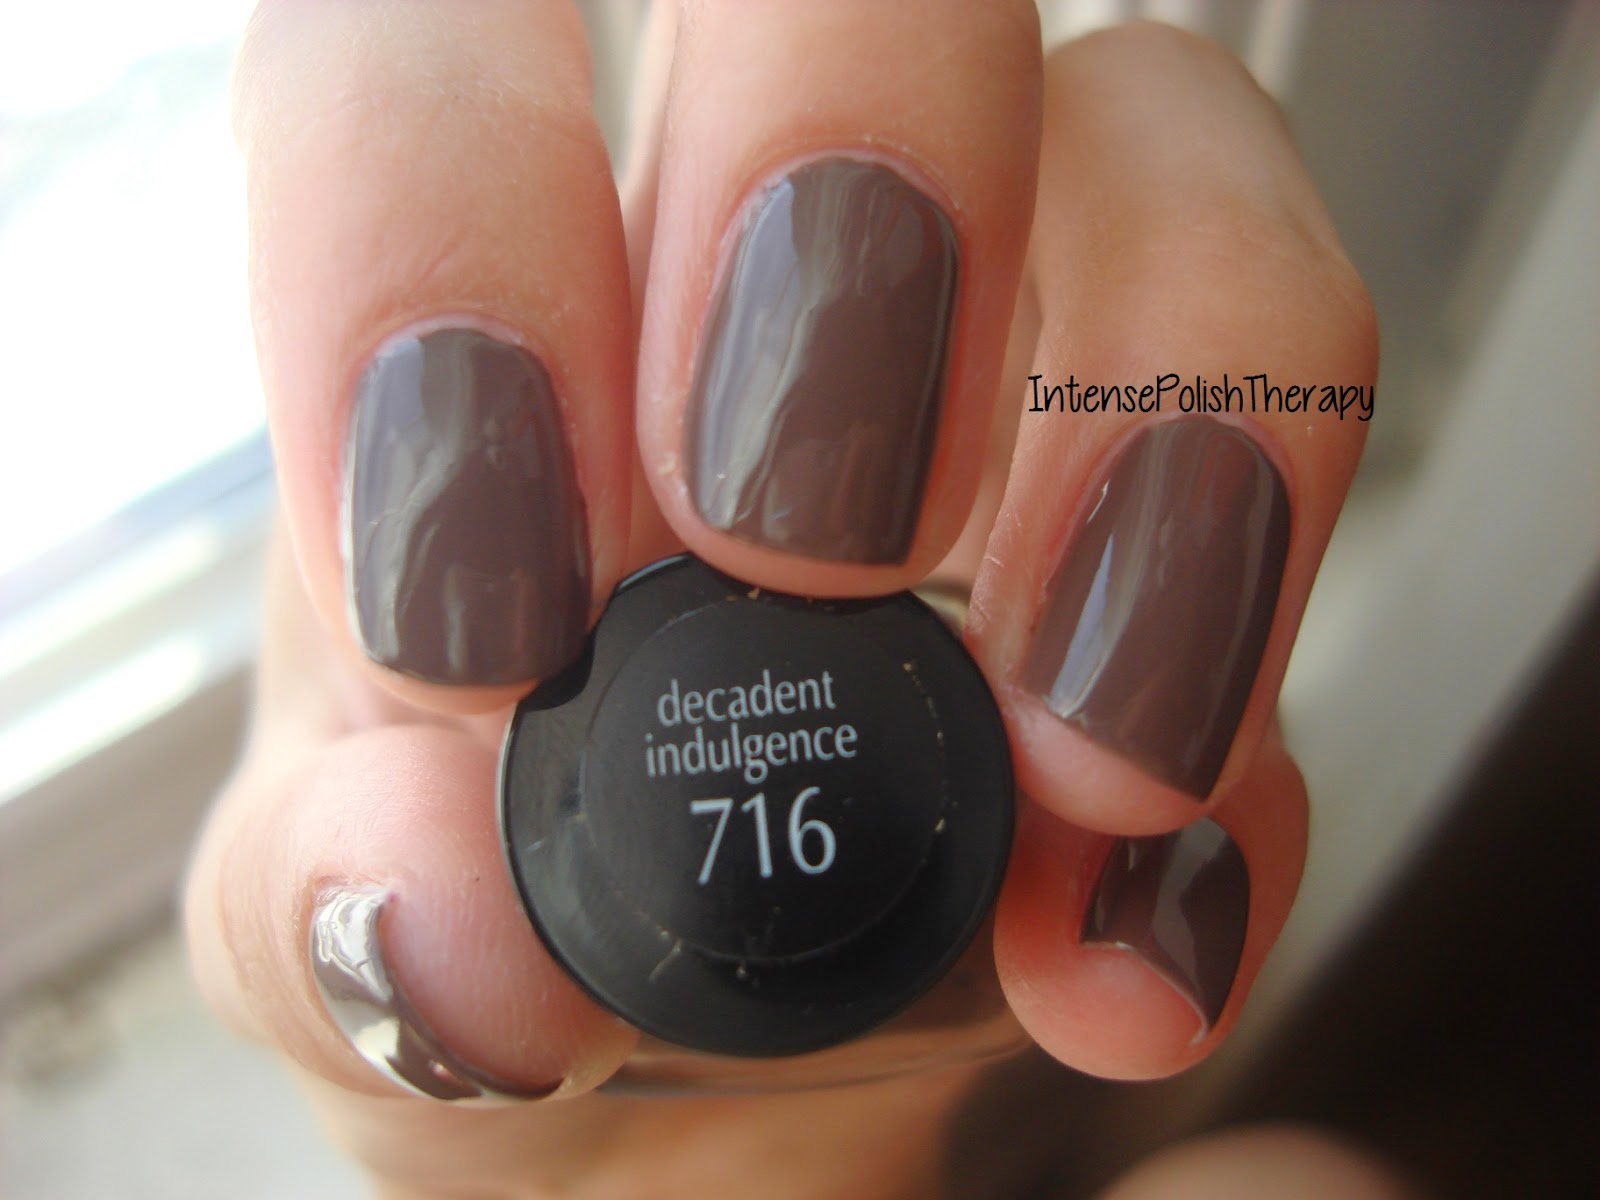 L'Oreal  Extraordinaire Gel Lacquer - Decadent Indulgence 716